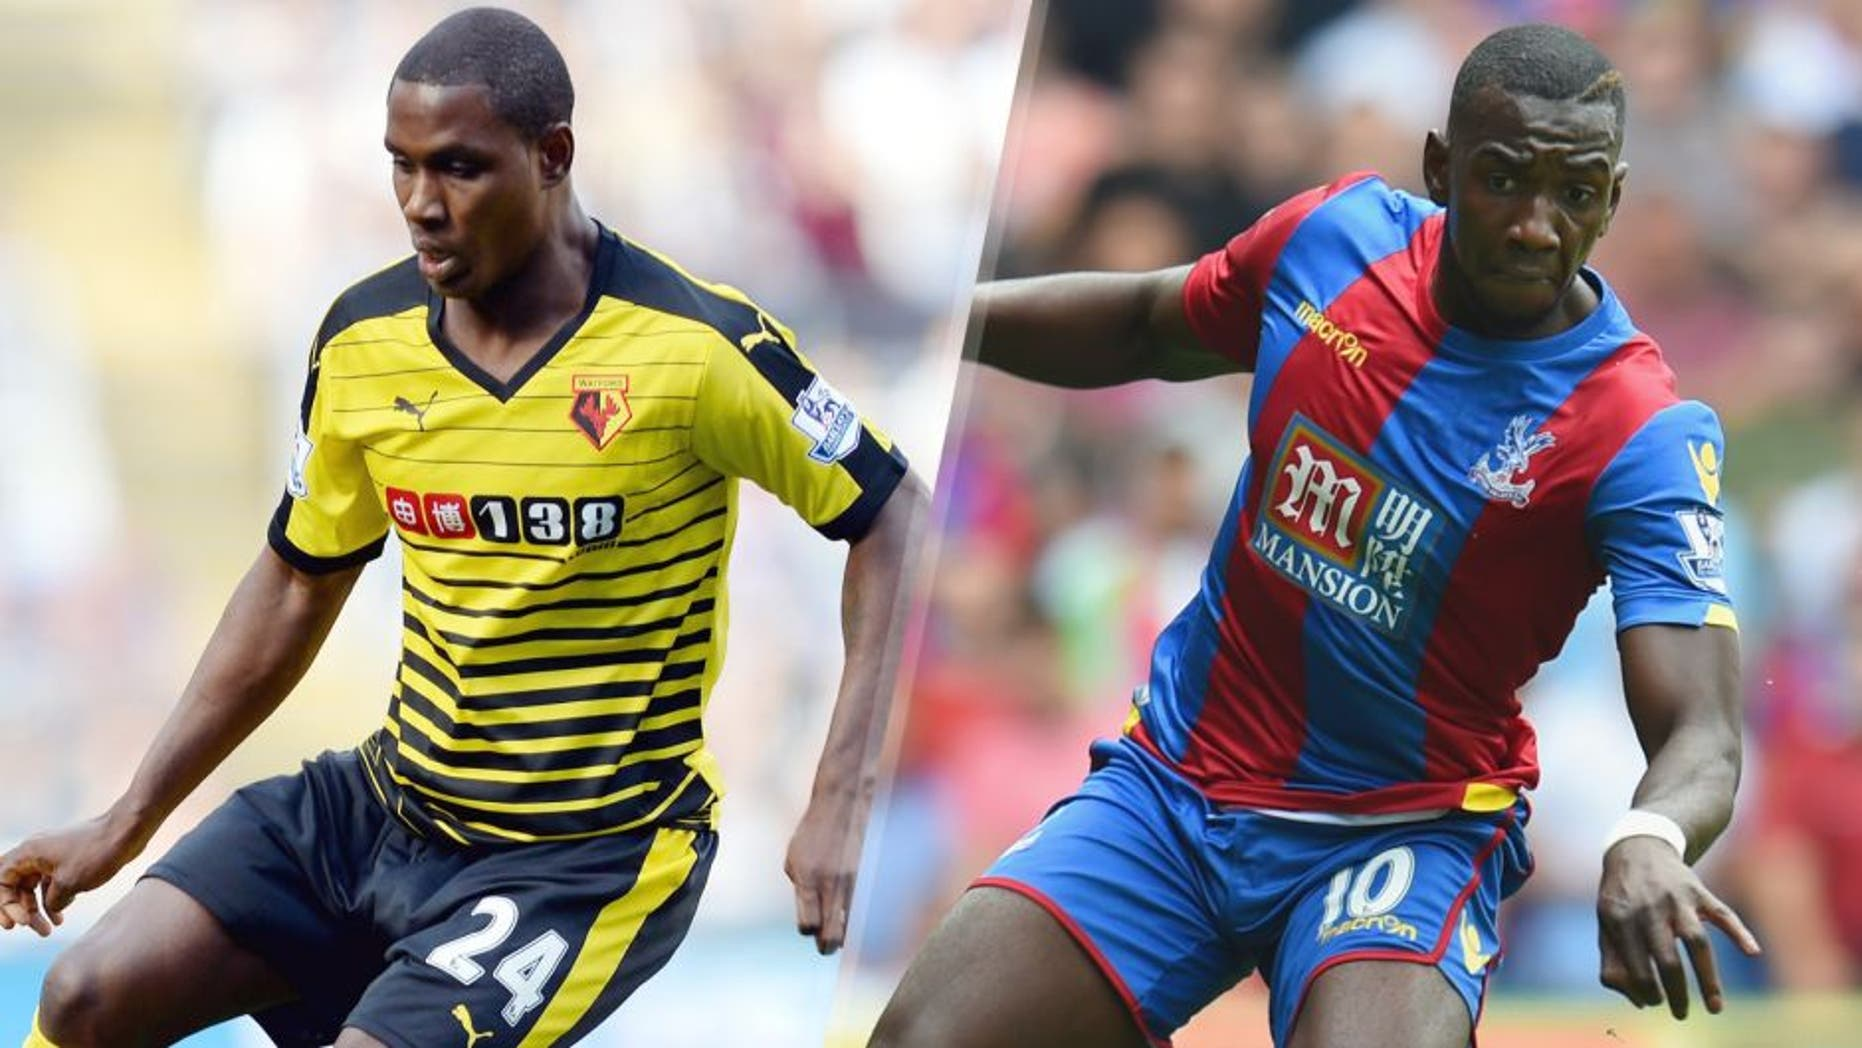 Odio Ighalo of Watford during the Barclays Premier League match between Newcastle United and Watford on September 19, 2015 in Newcastle upon Tyne, United Kingdom. (Photo by Nigel Roddis/Getty Images) Yannick Bolasie of Palace in action during the Barclays Premier League match between Crystal Palace and Arsenal on August 16, 2015 in London, United Kingdom. (Photo by Michael Regan/Getty Images)